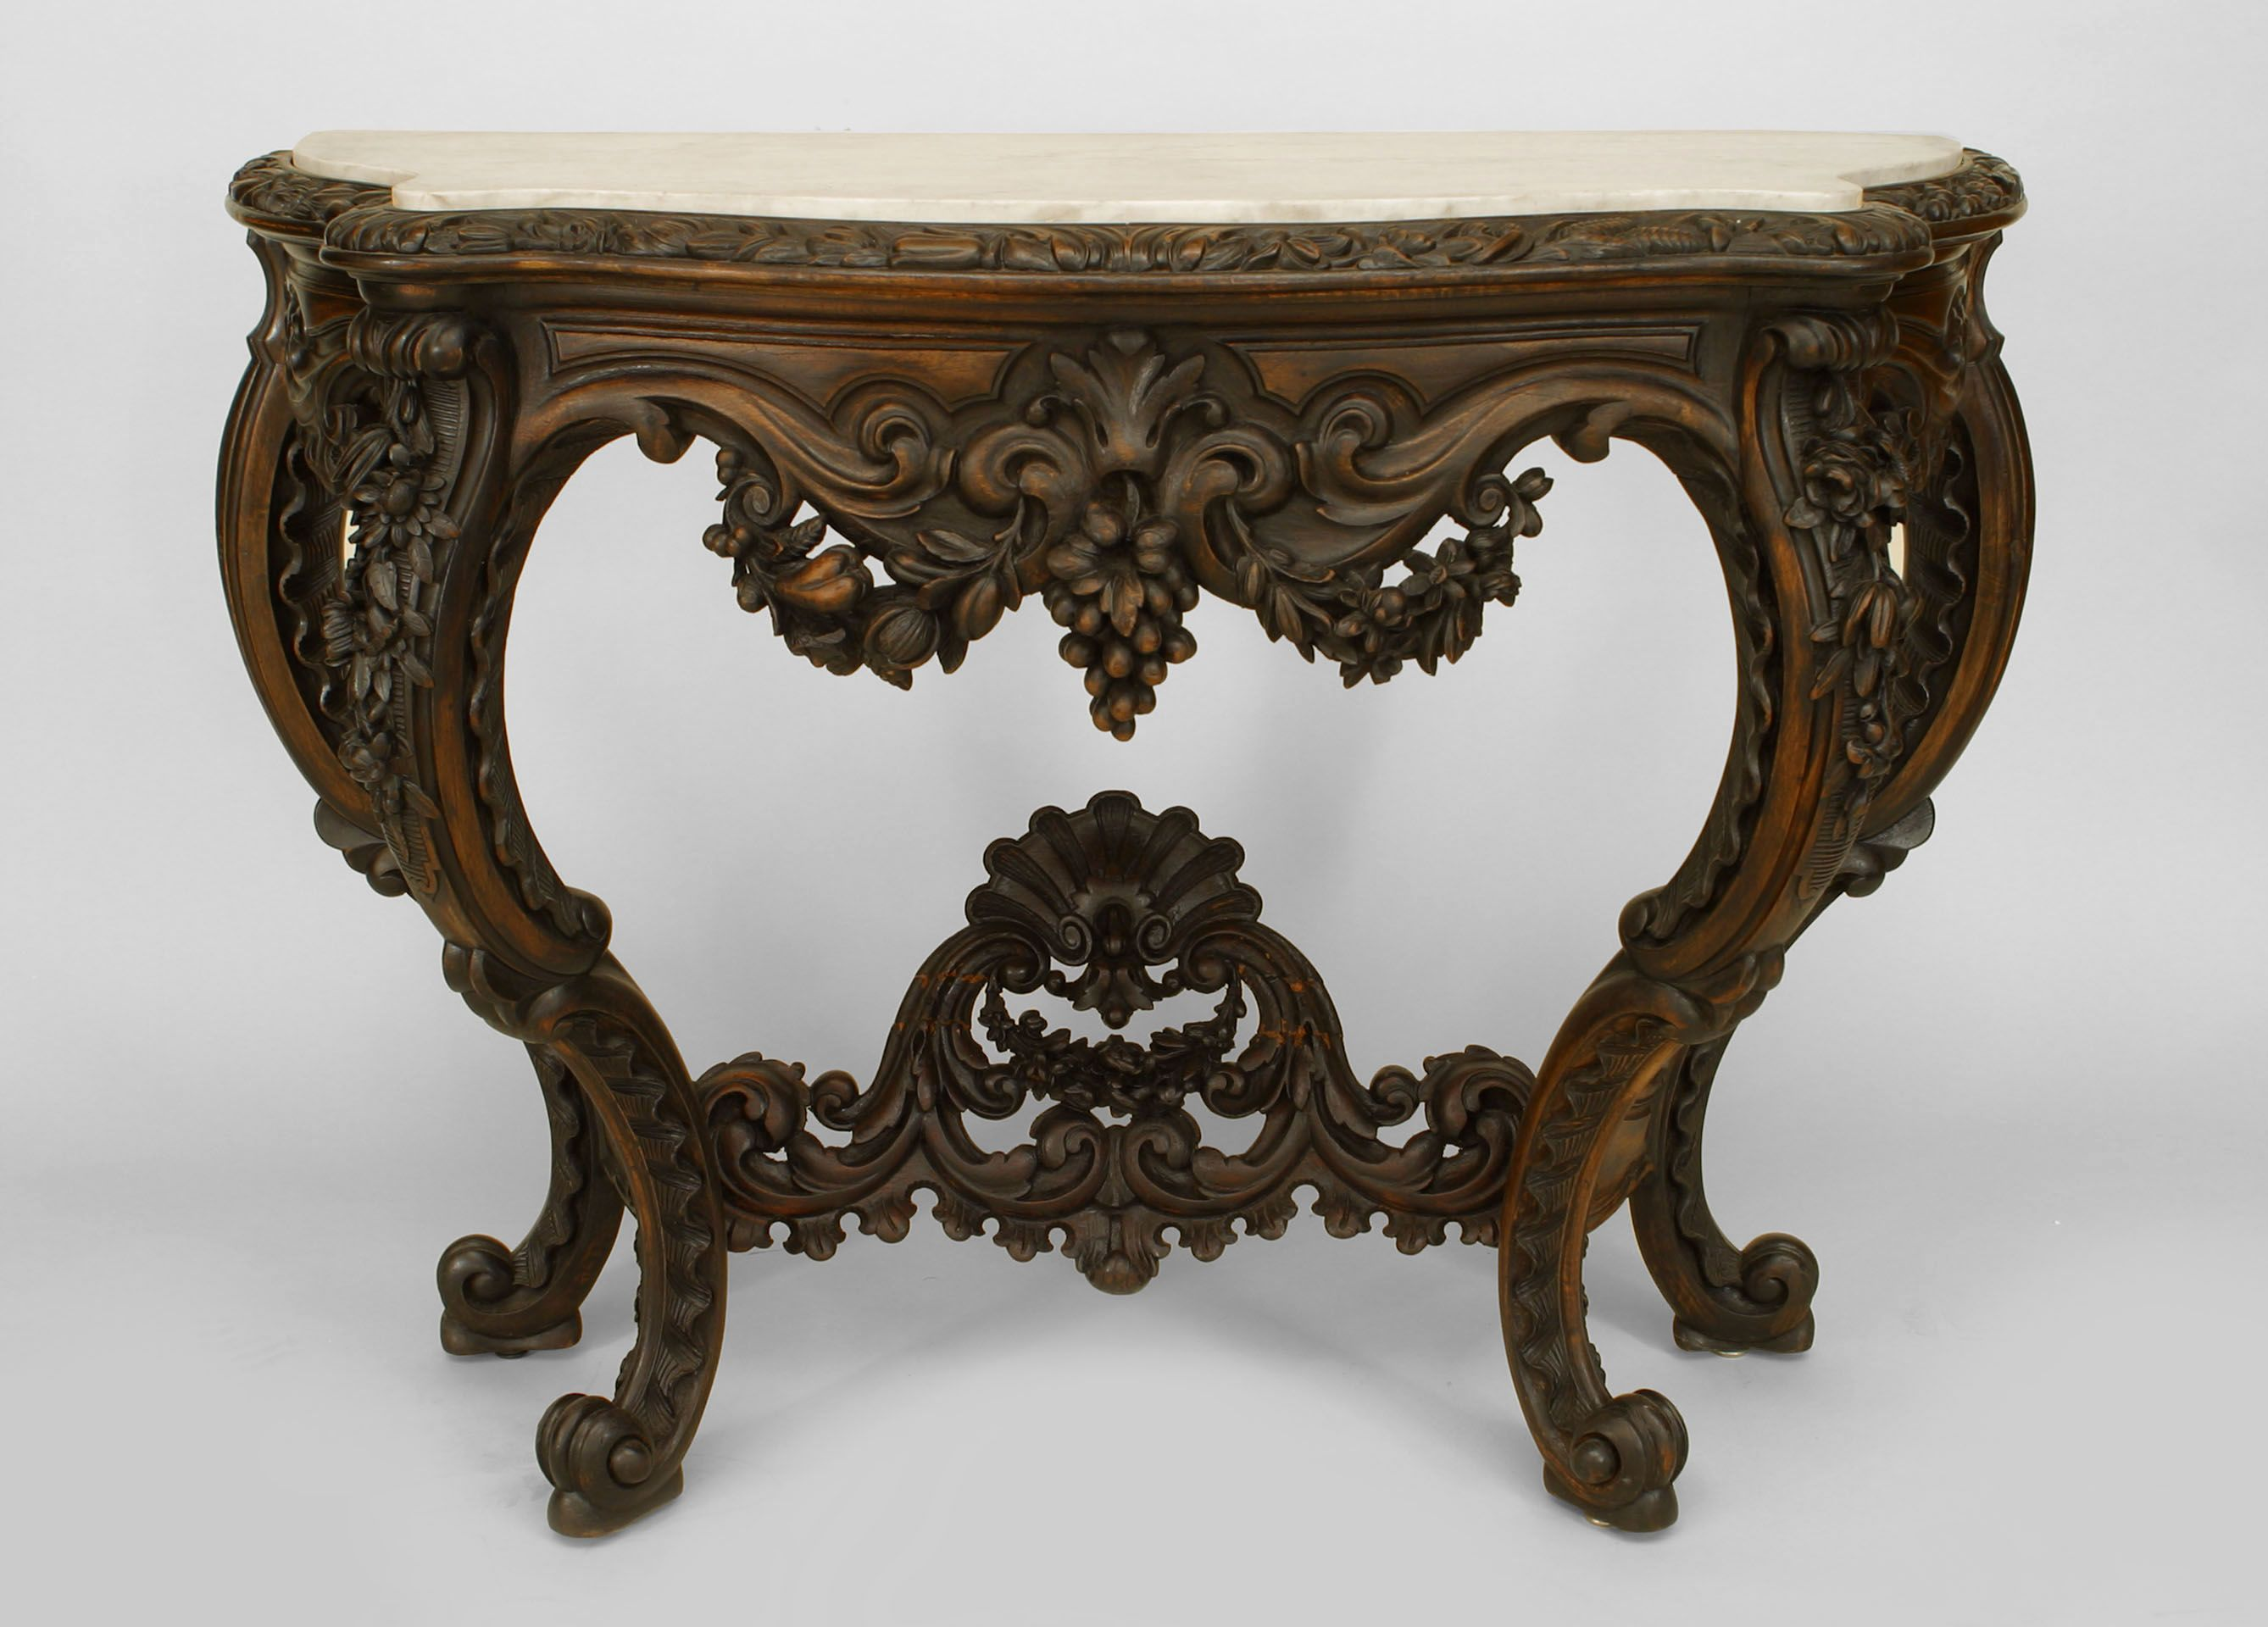 American Victorian ebonized and console table with floral carved